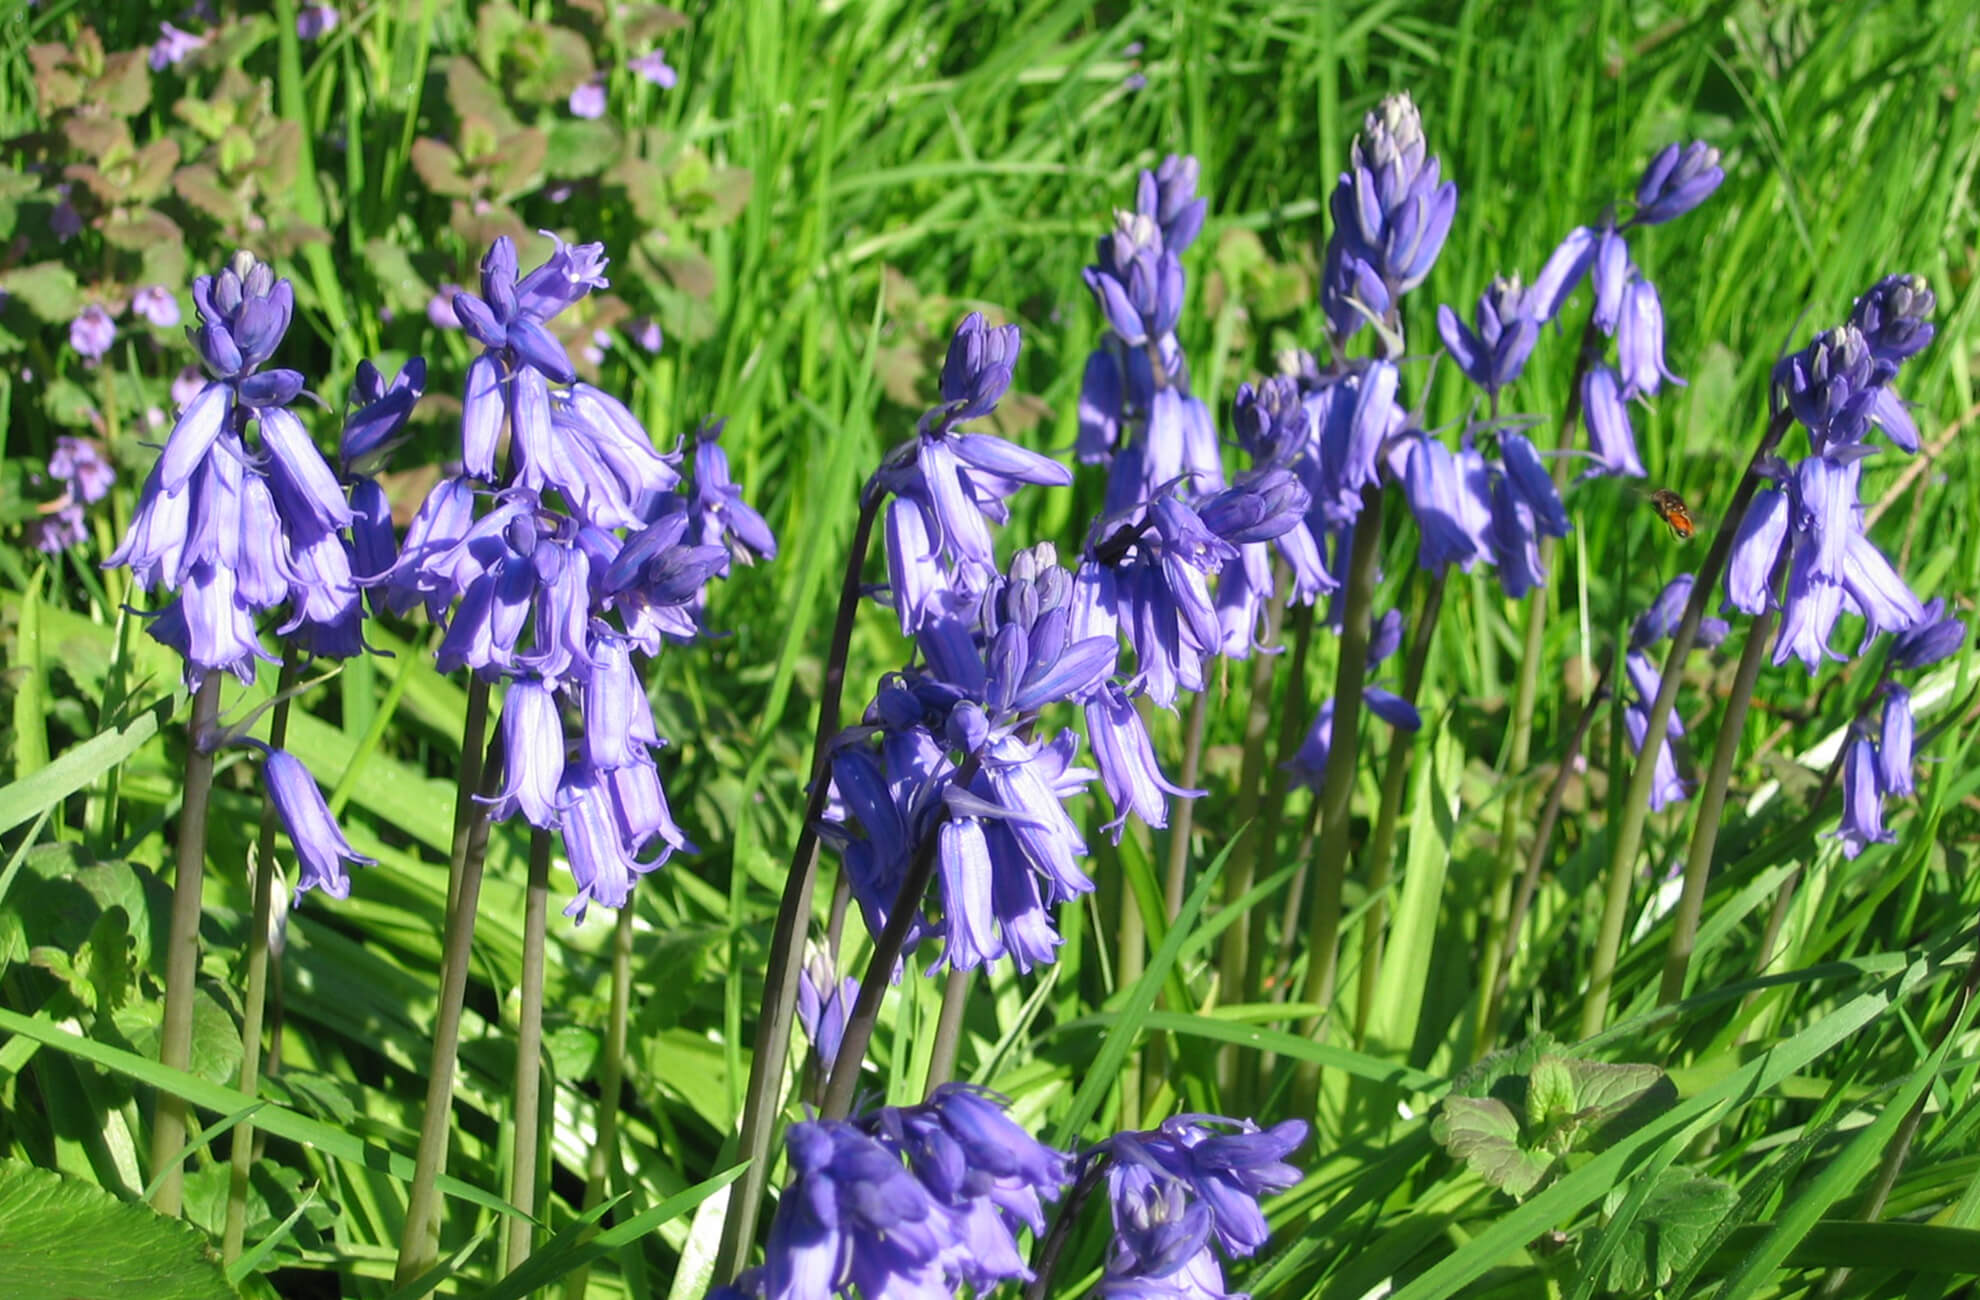 A close up of beautiful bluebells glistening in the sunshine at Combermere Abbey in Cheshire